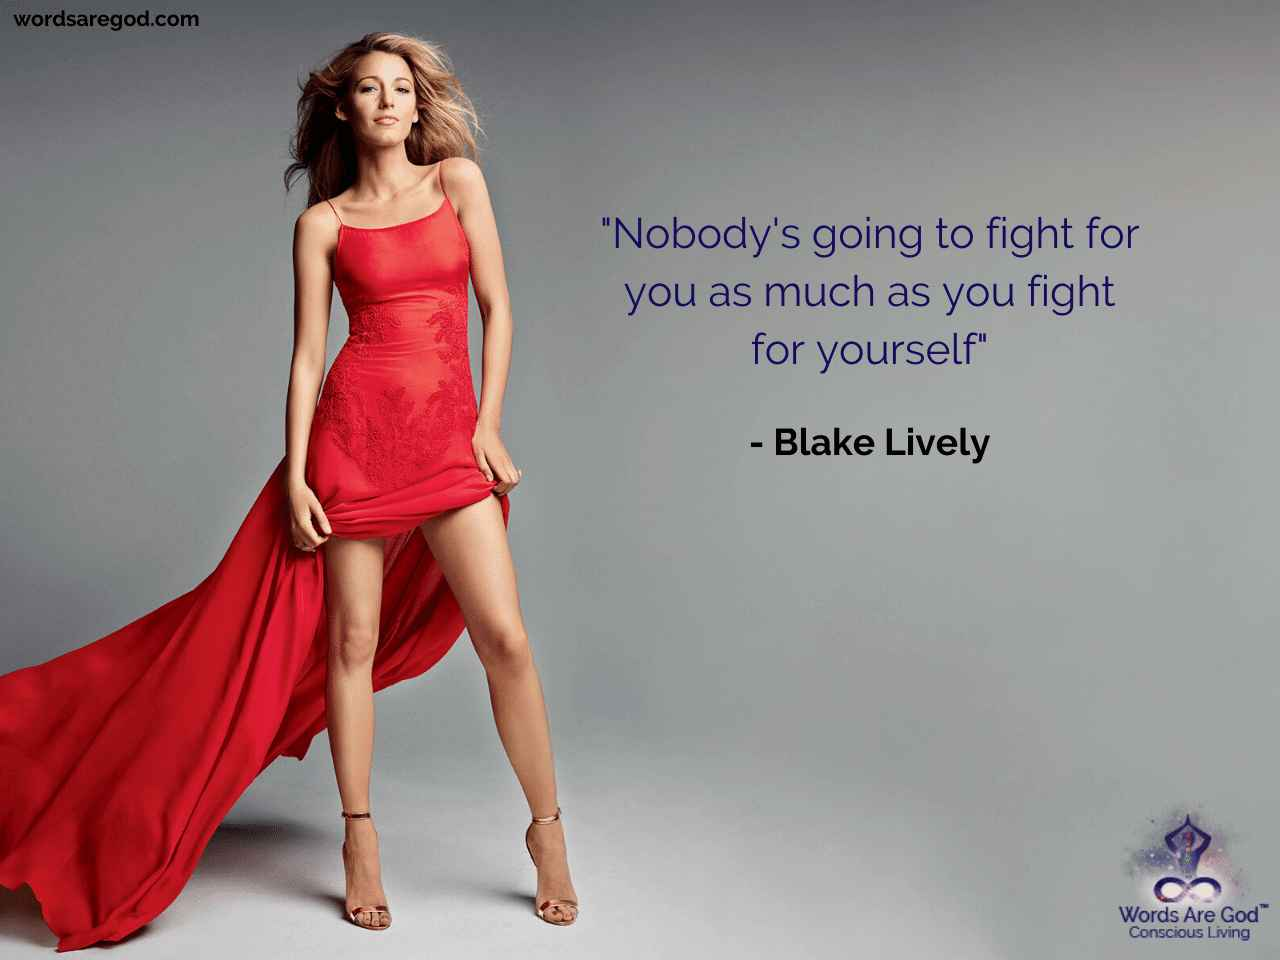 Blake Lively Inspirational Quote